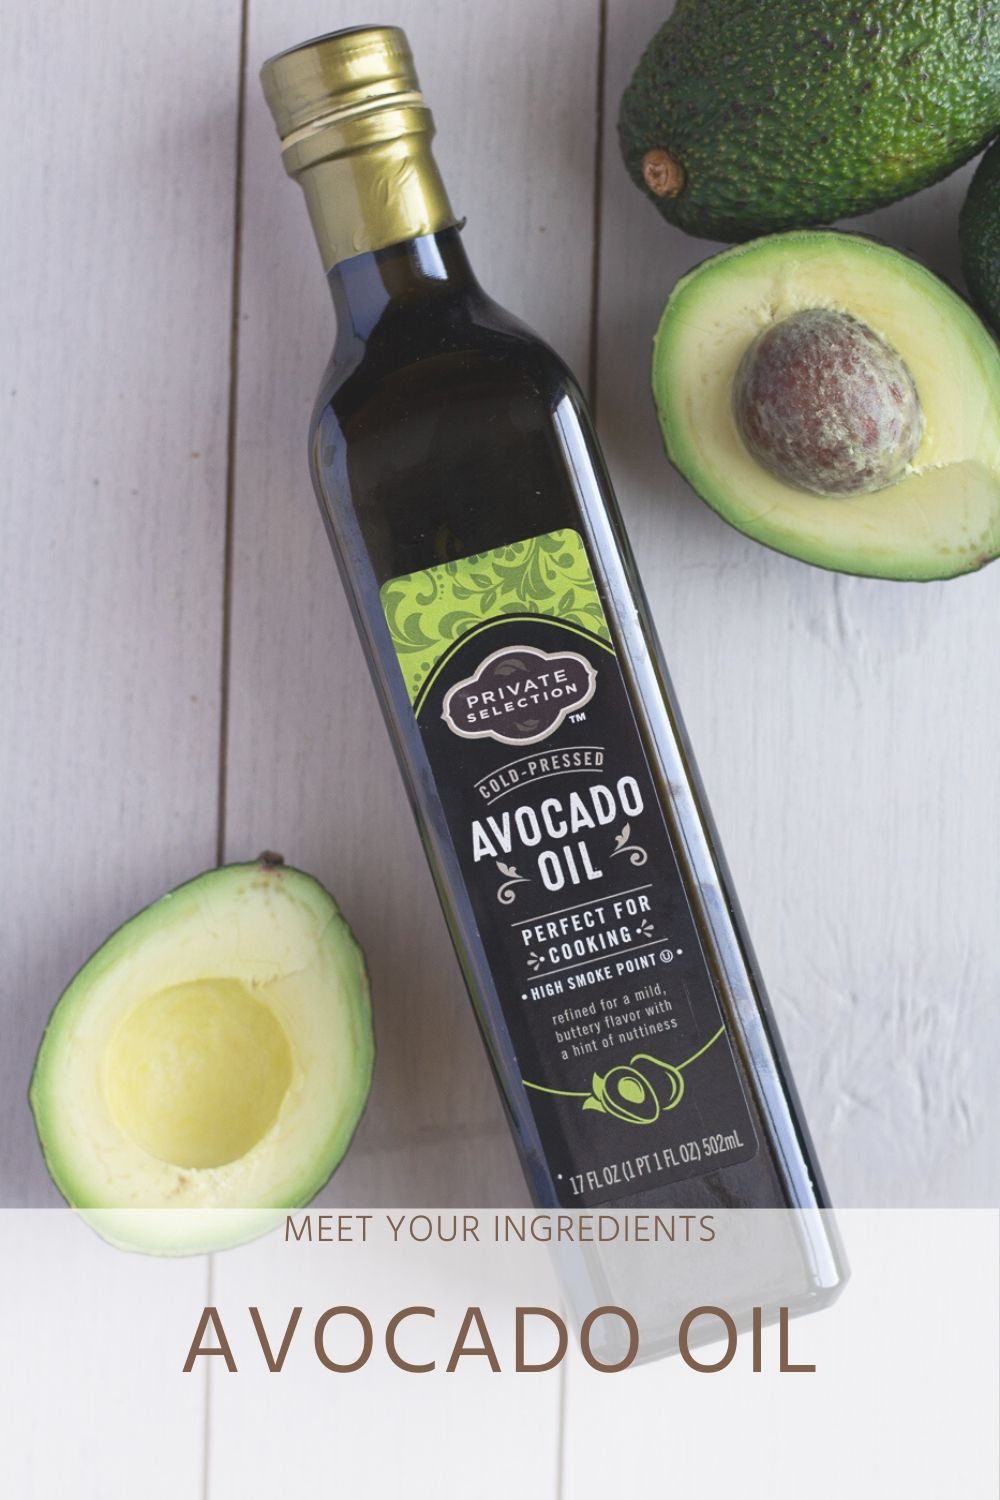 Meet Your Ingredients: Avocado Oil